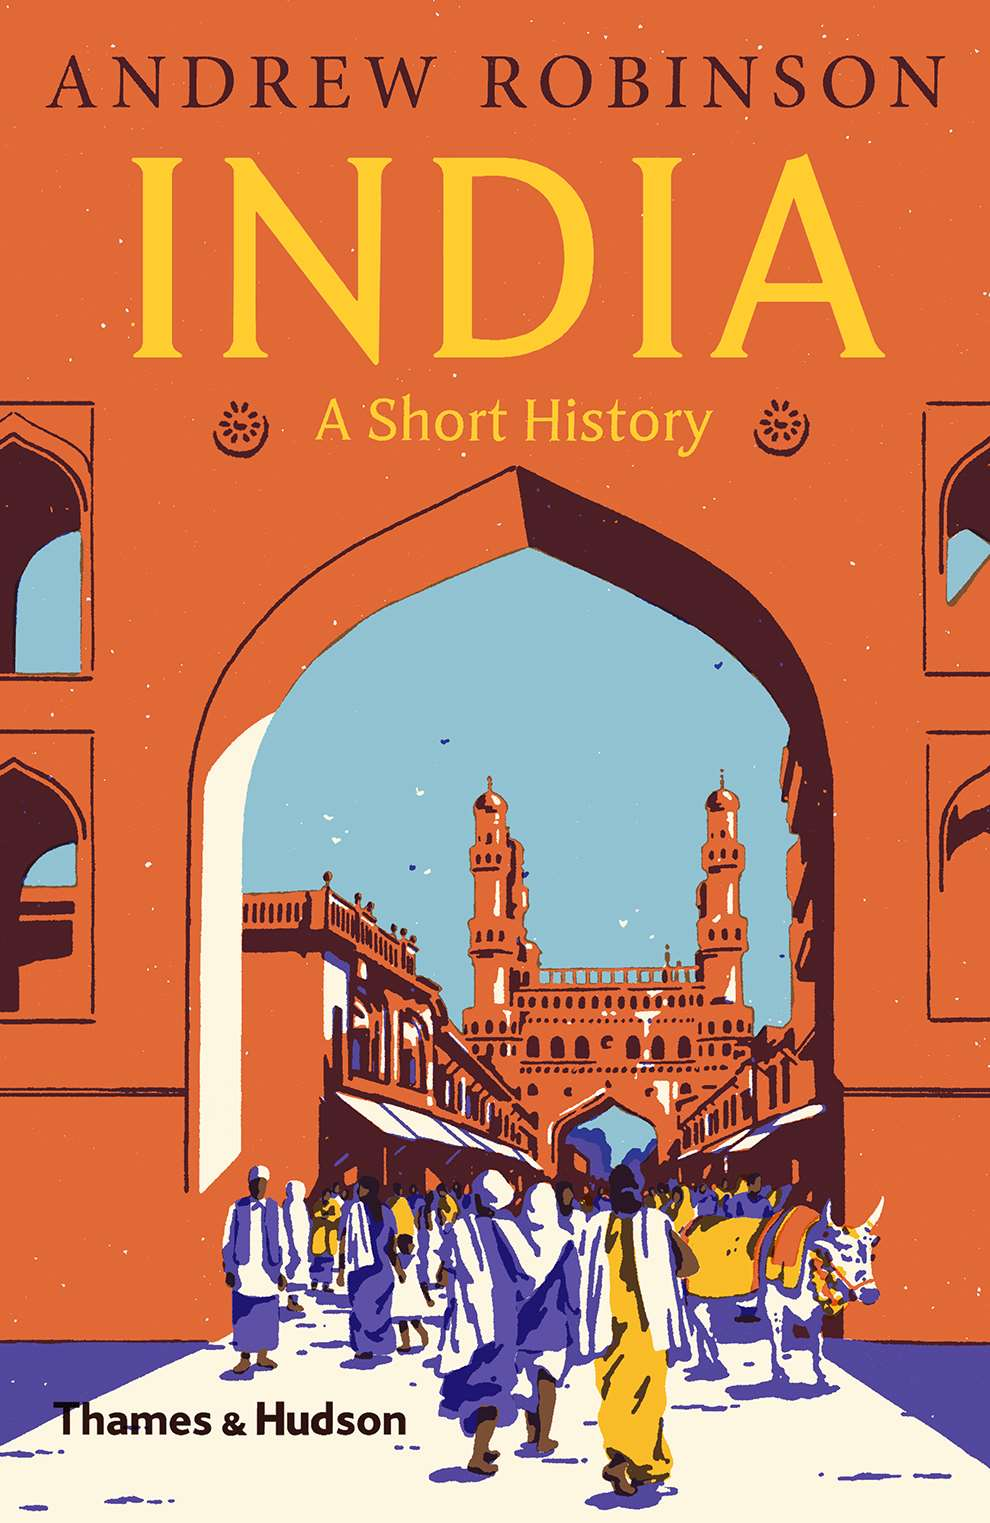 Harry Tennant, Book cover India A Short History for Thames and Hudson, bright, digital, textural style. Architecture.